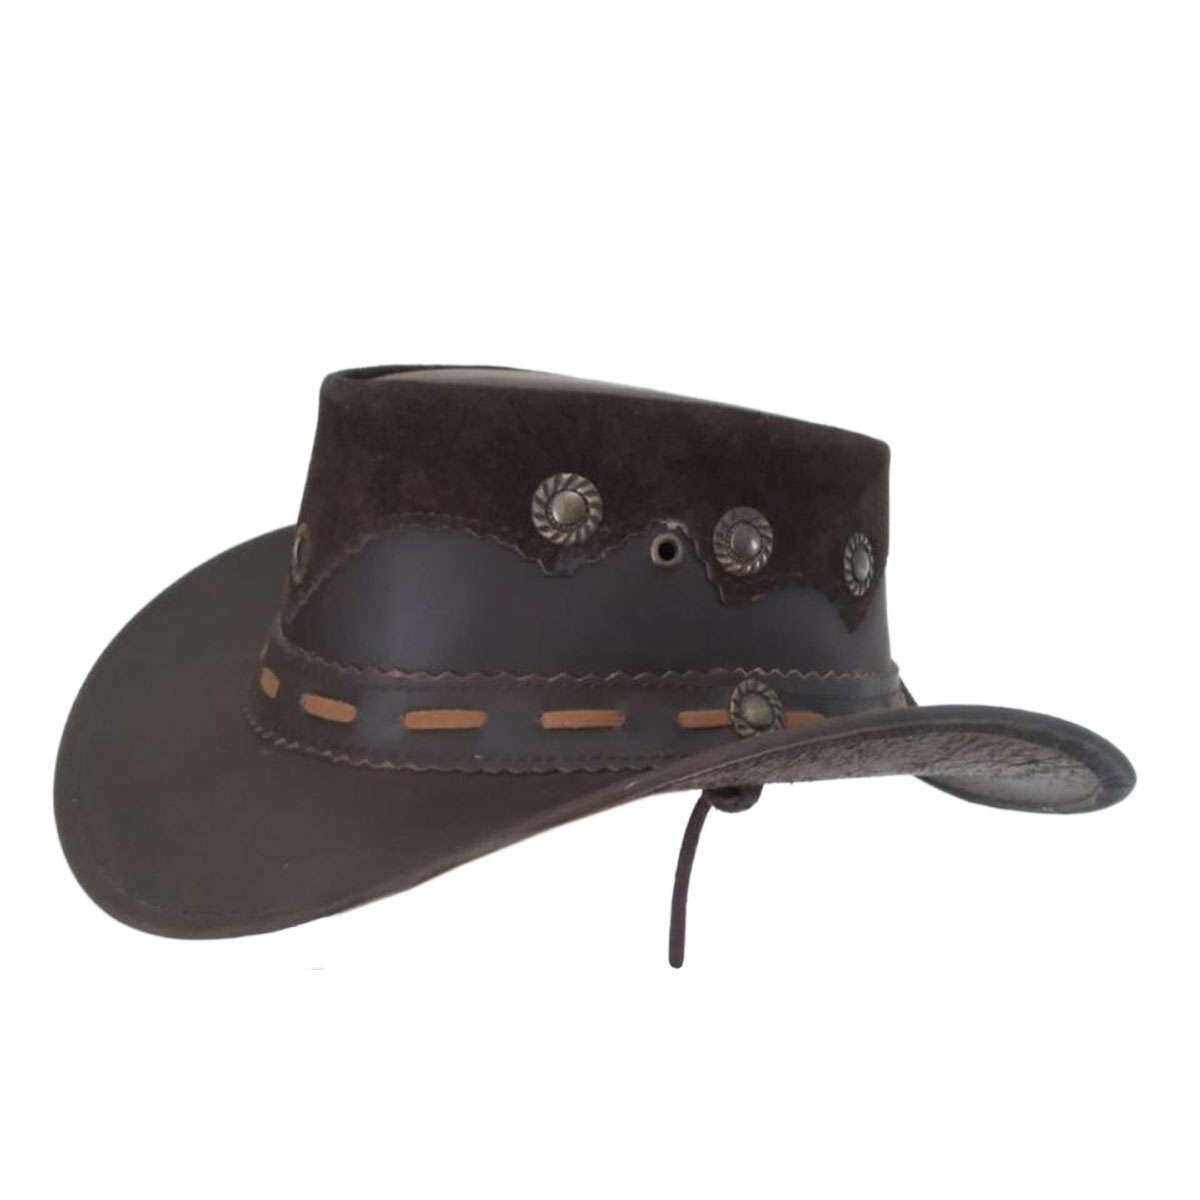 BROWN TRADITIONAL LEATHER HAT